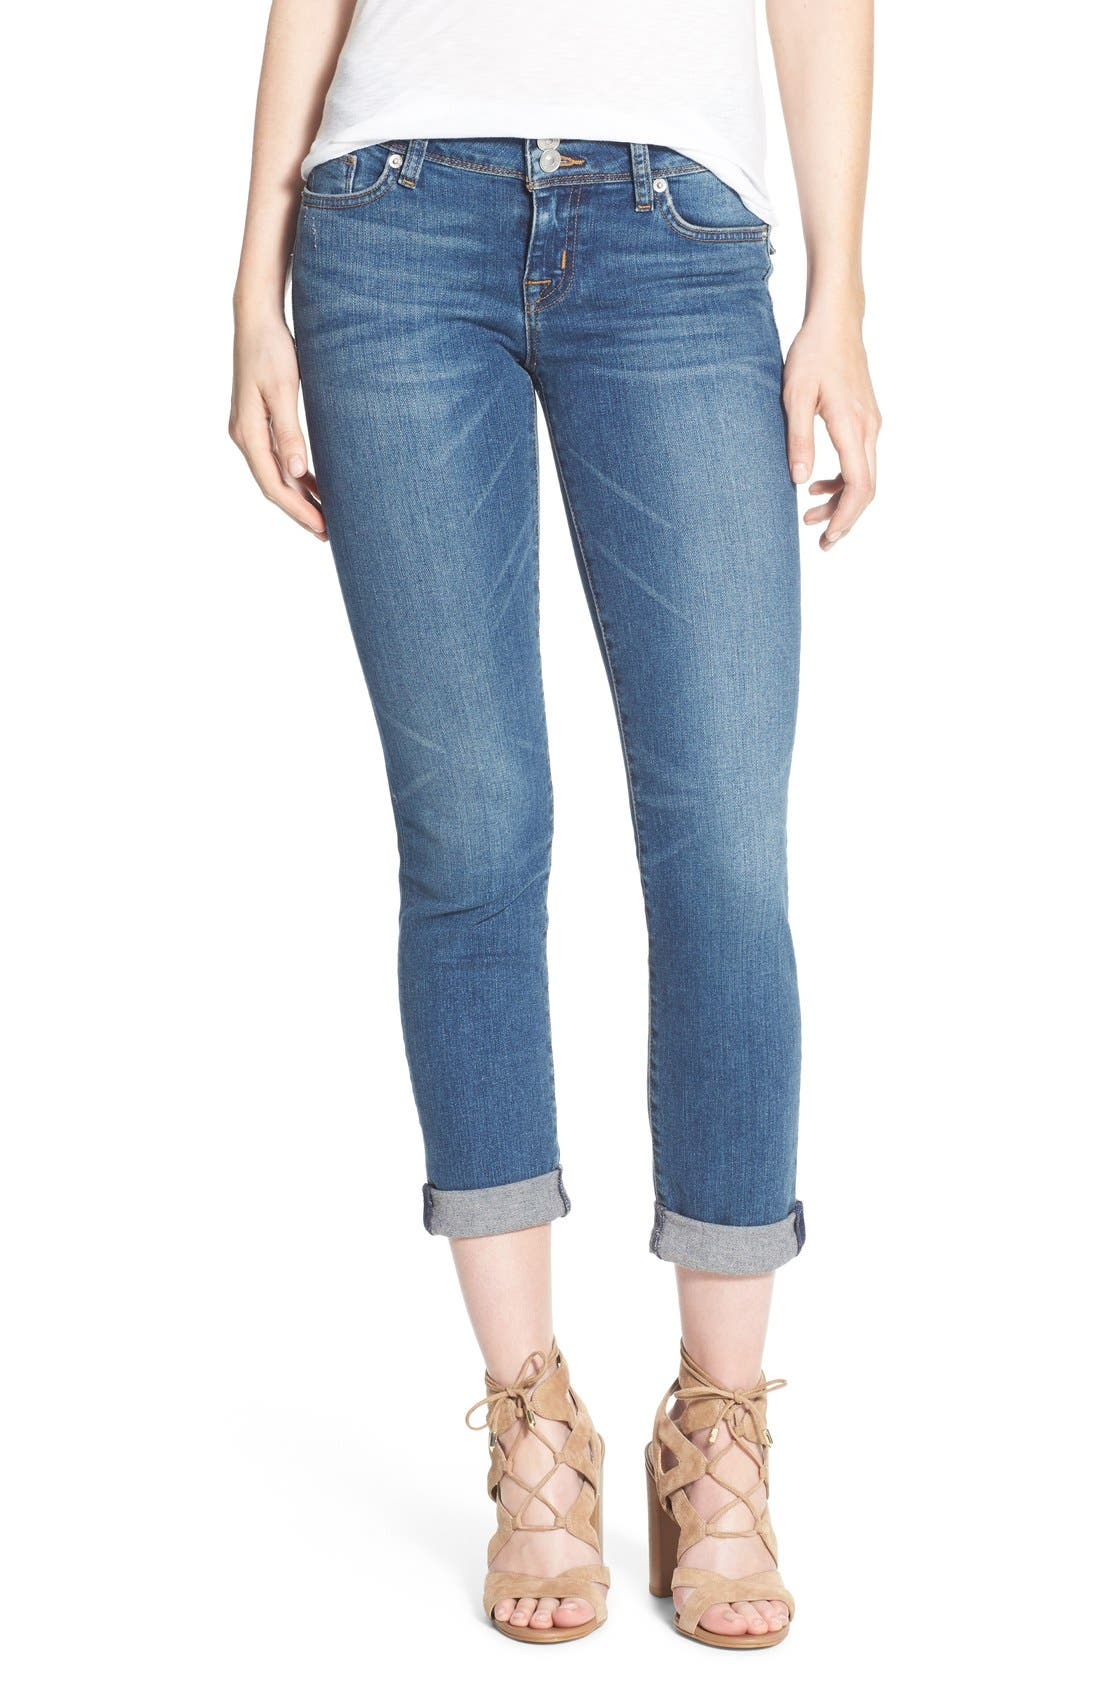 Alternate Image 1 Selected - Hudson Jeans 'Ginny' Rolled Crop Jeans (Point Break)